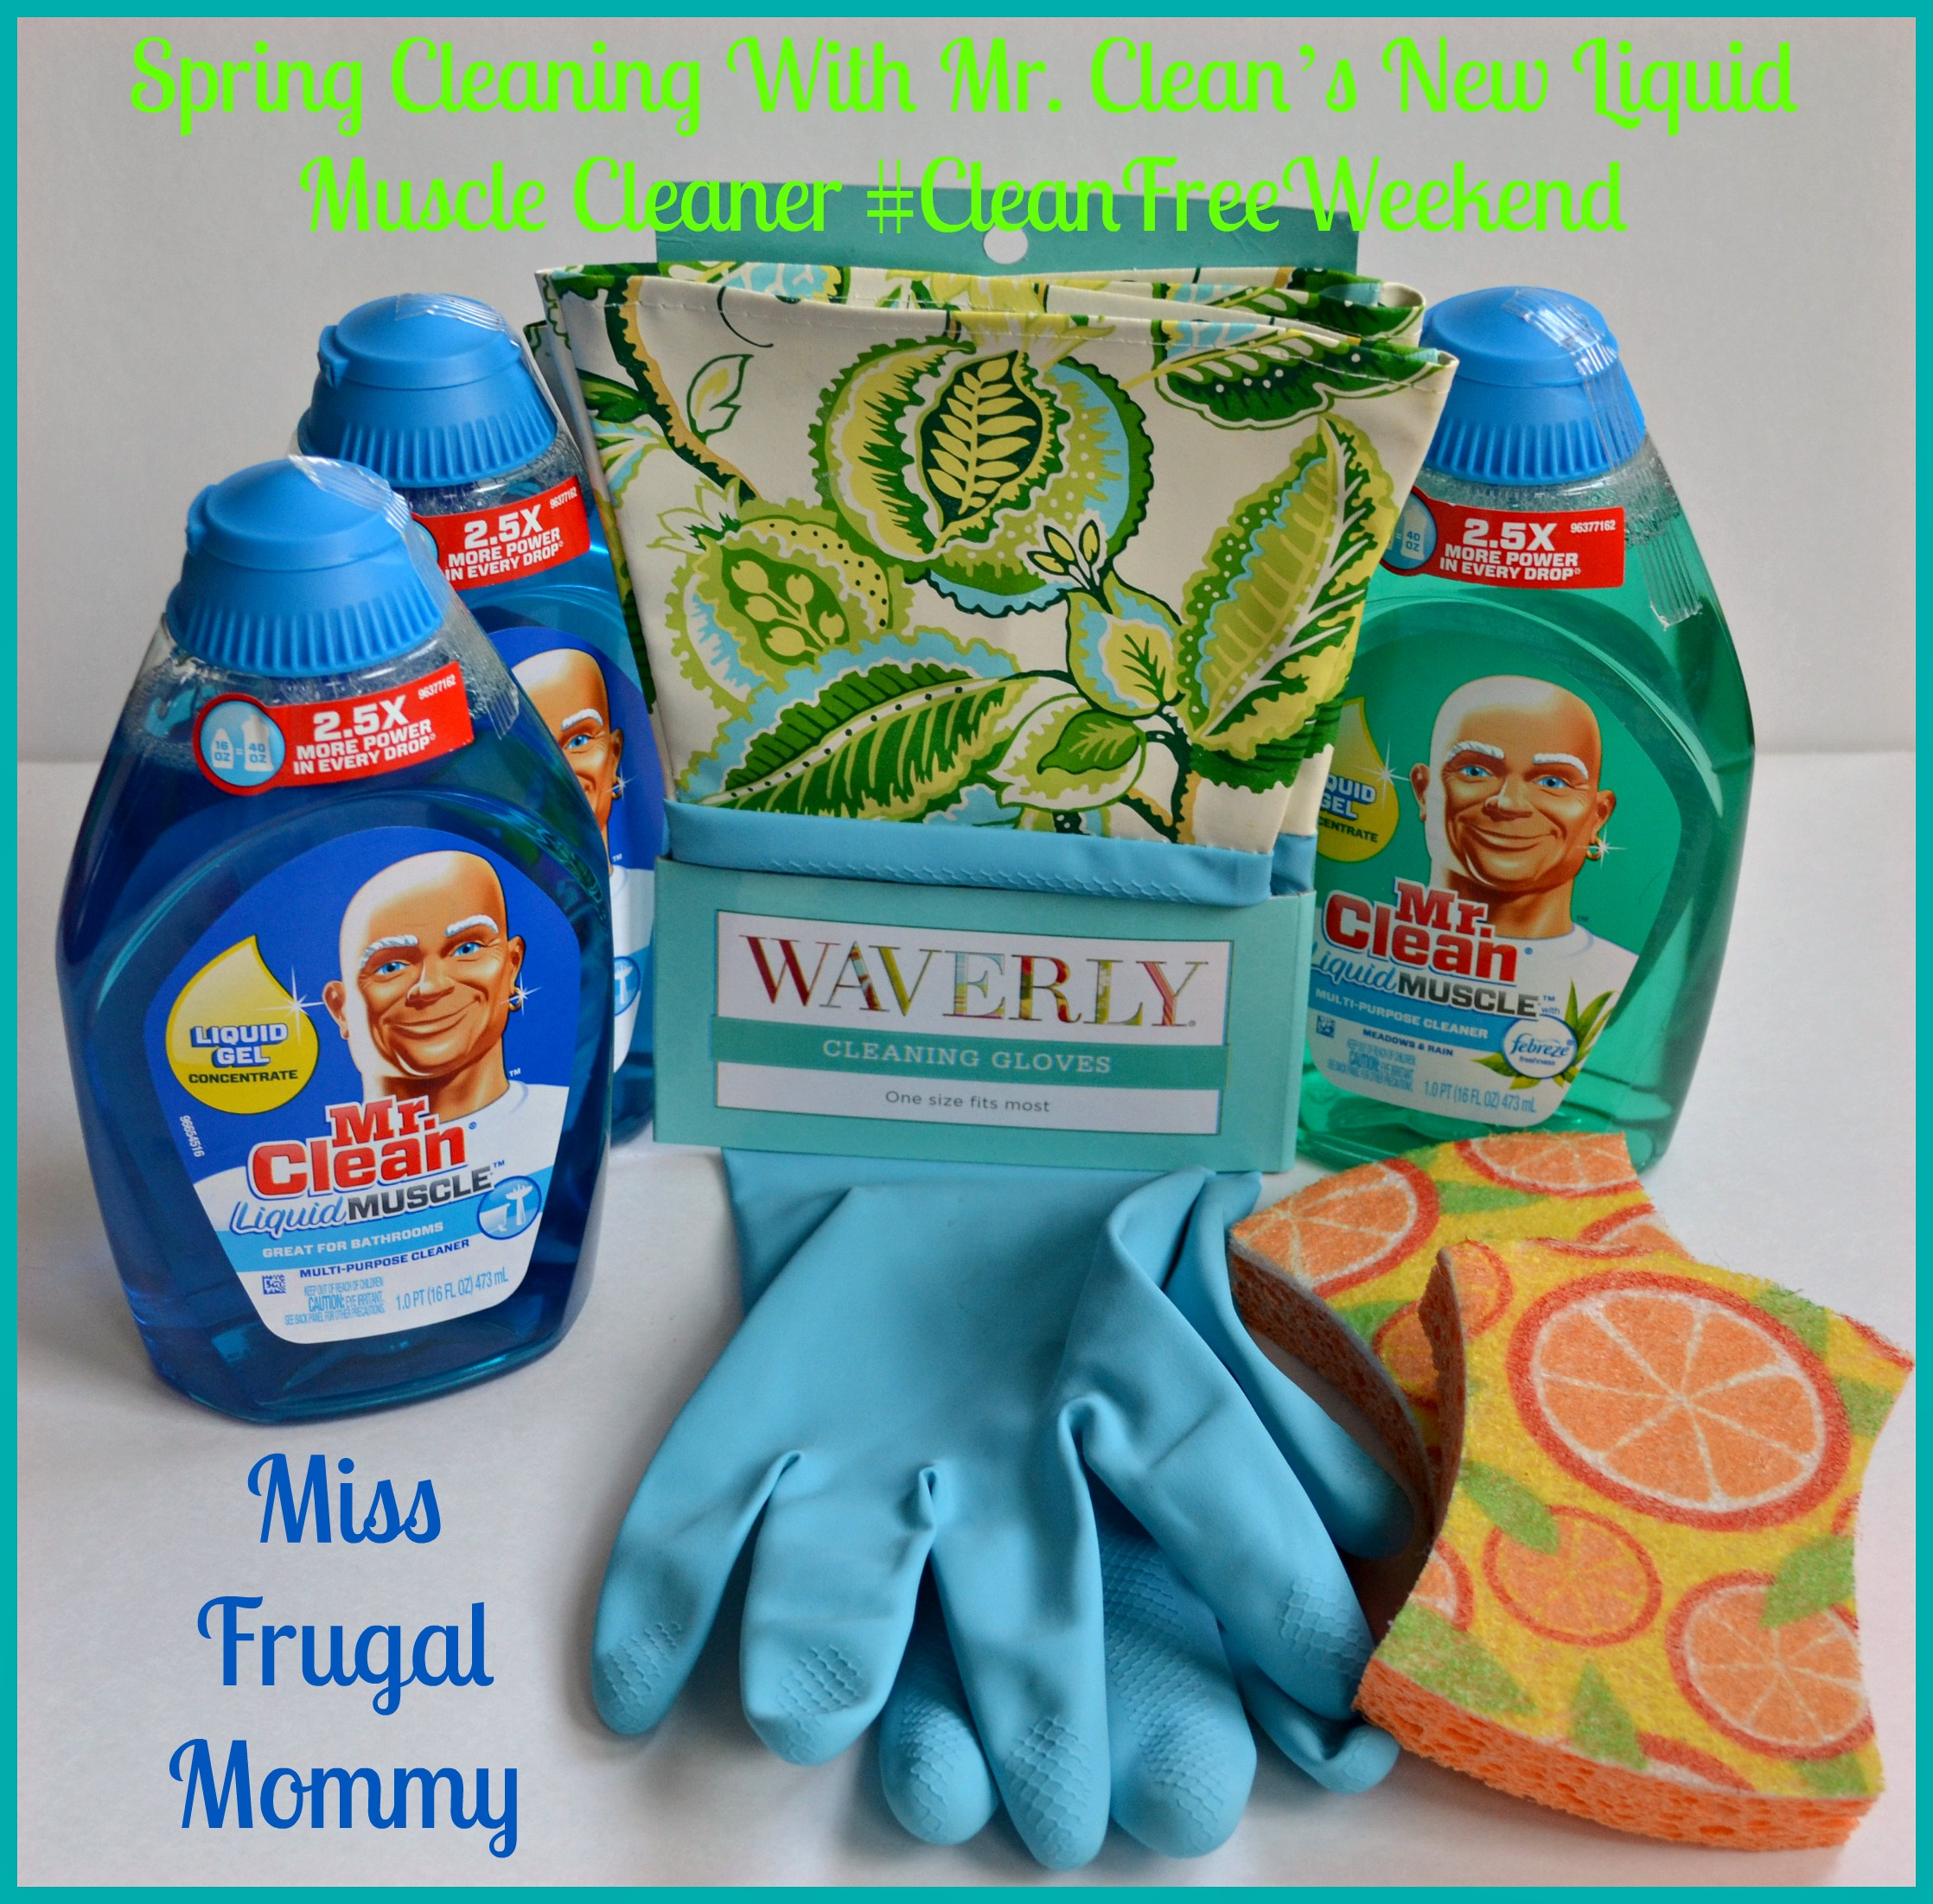 Spring Cleaning With Mr. Clean's New Liquid Muscle Cleaner #CleanFreeWeekend